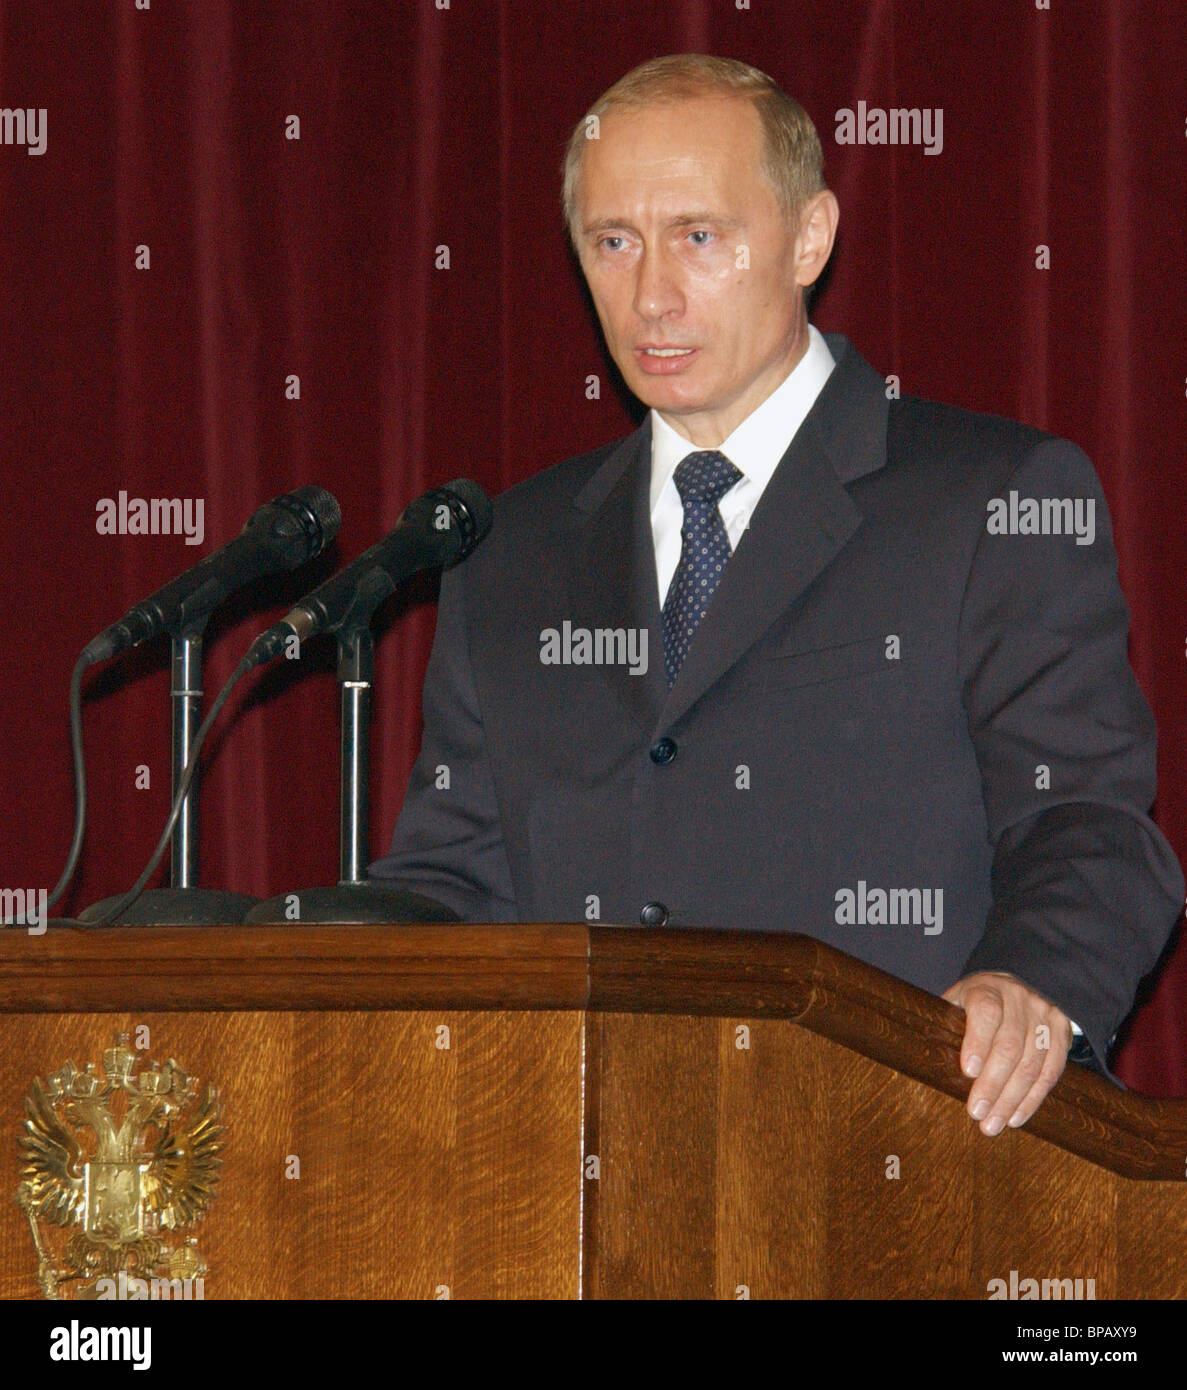 Vladimir Putin attended a conference of Russian Ambassadors at the Foreign Ministry. - Stock Image